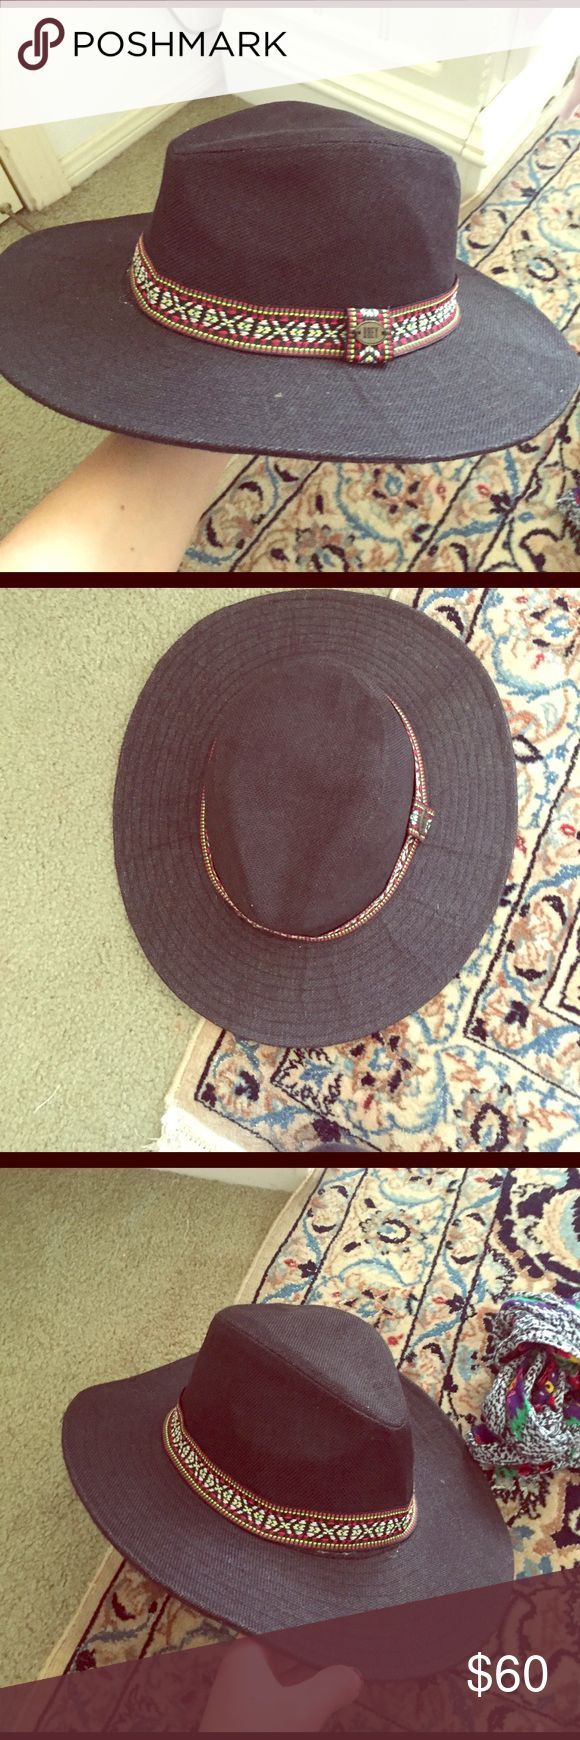 Wide brimmed hat Wide brimmed hat fedora hat hipster hat sun hat Aztec print band tribal print band boho Coachella festival summer by obey from urban outfitters Native American hat western Urban Outfitters Accessories Hats